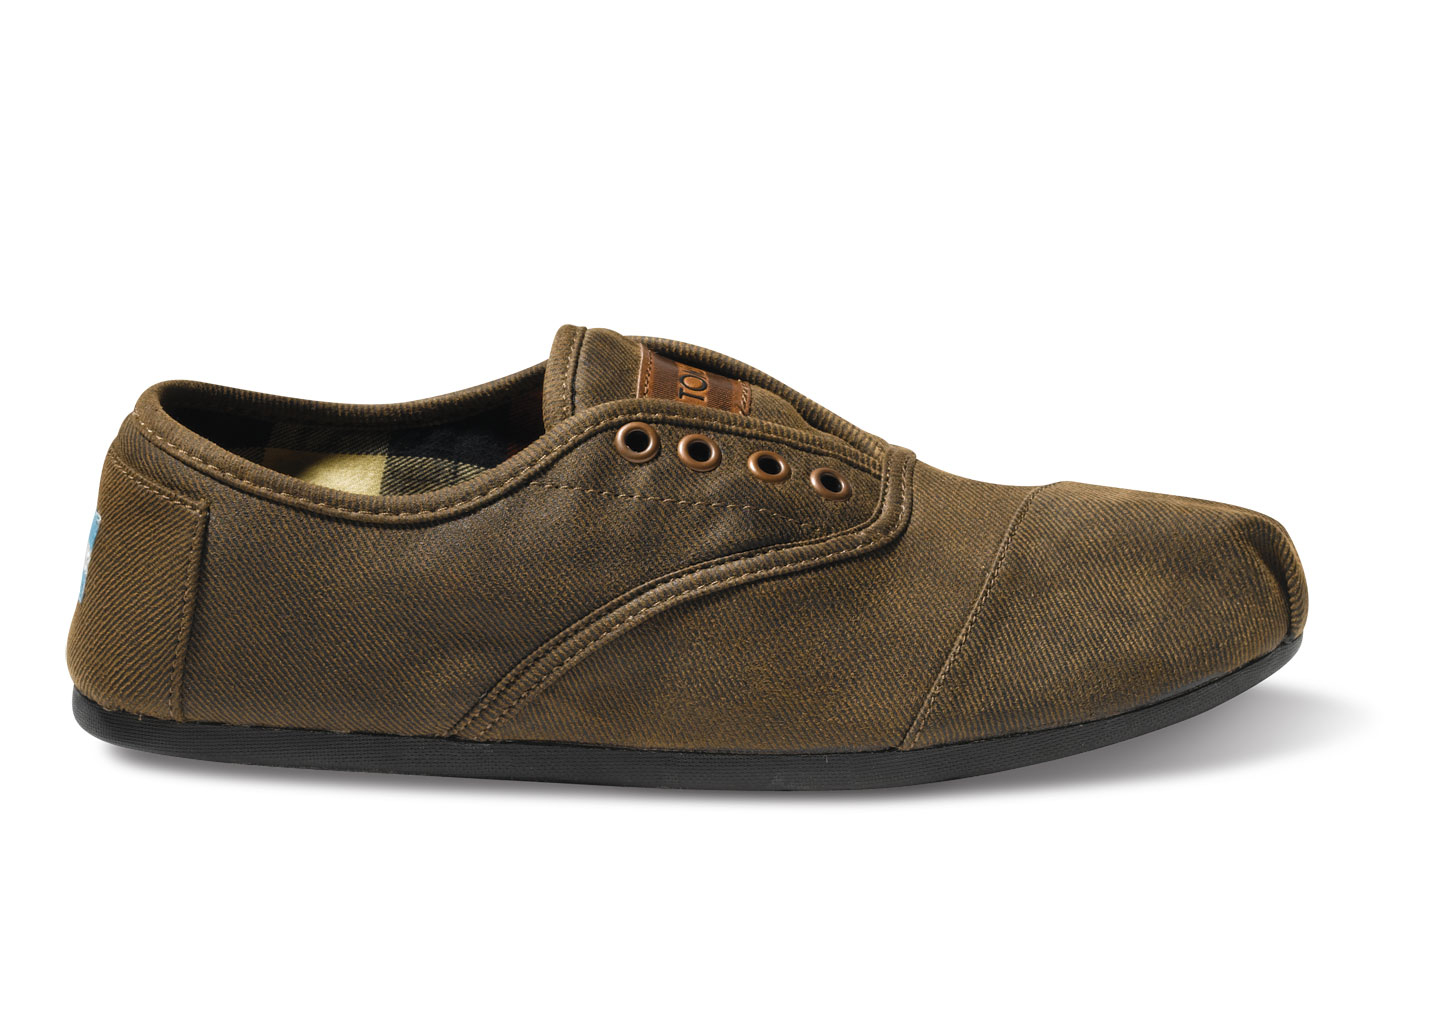 Toms Shoes Cordones Mens